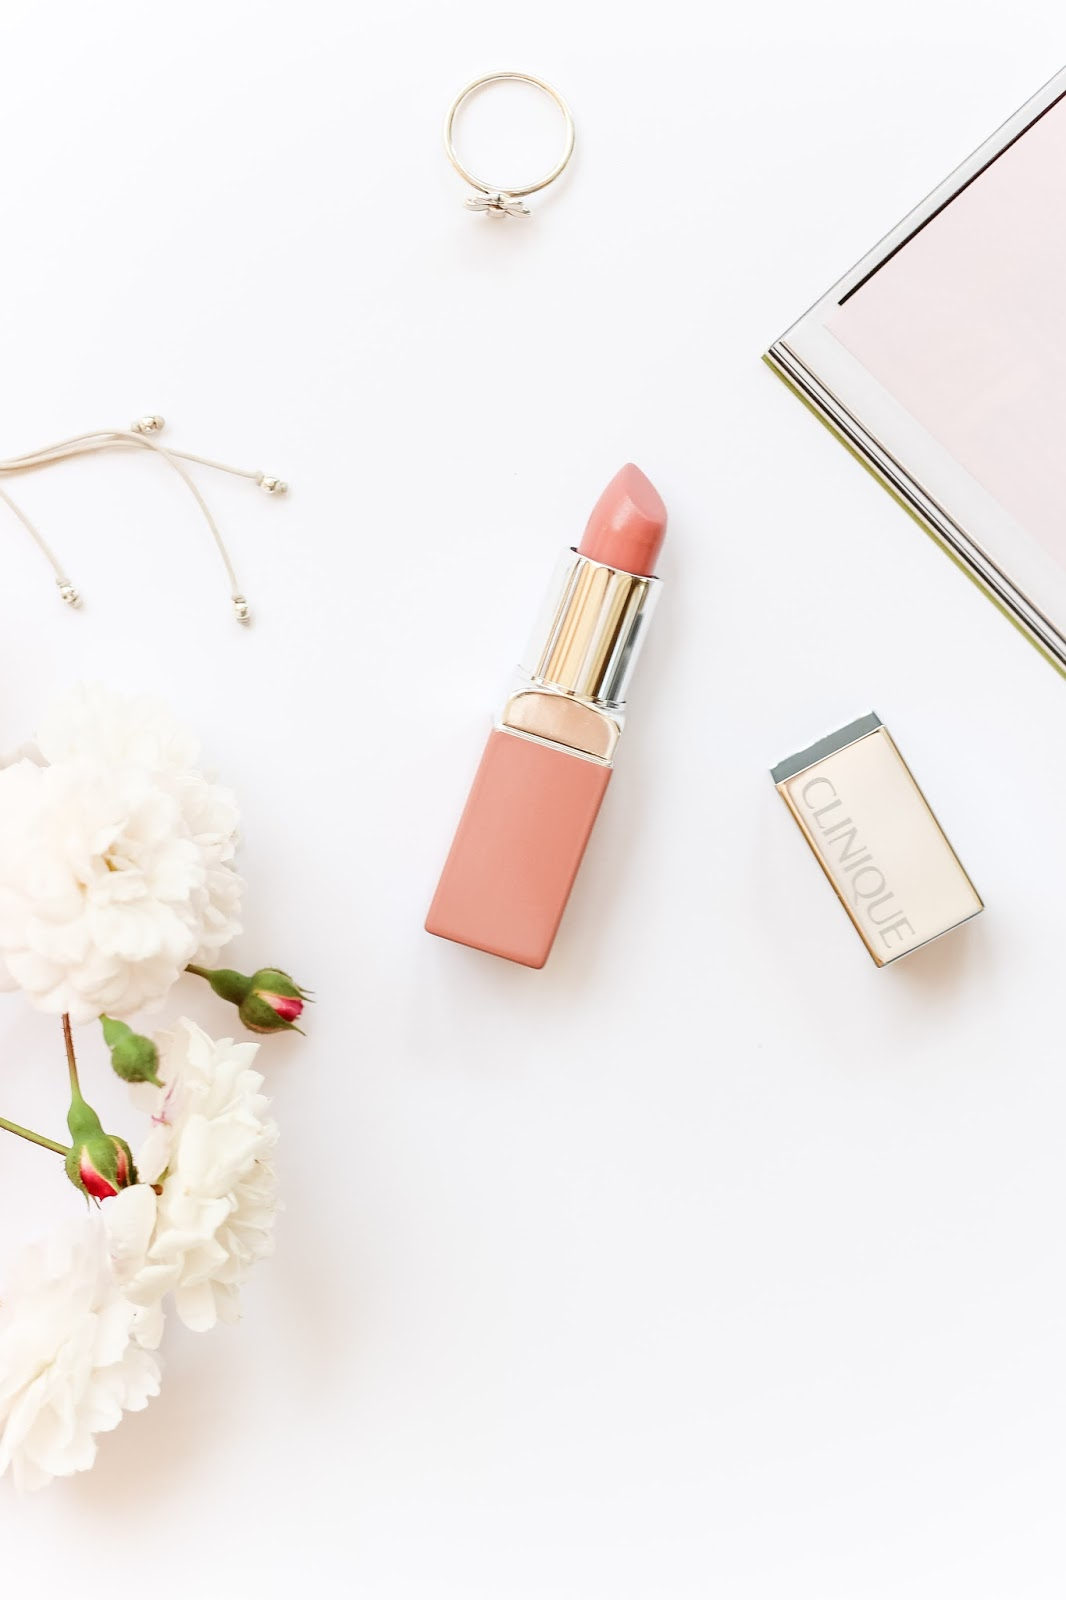 Clinique Pop Lip Colour in Beige Pop Review